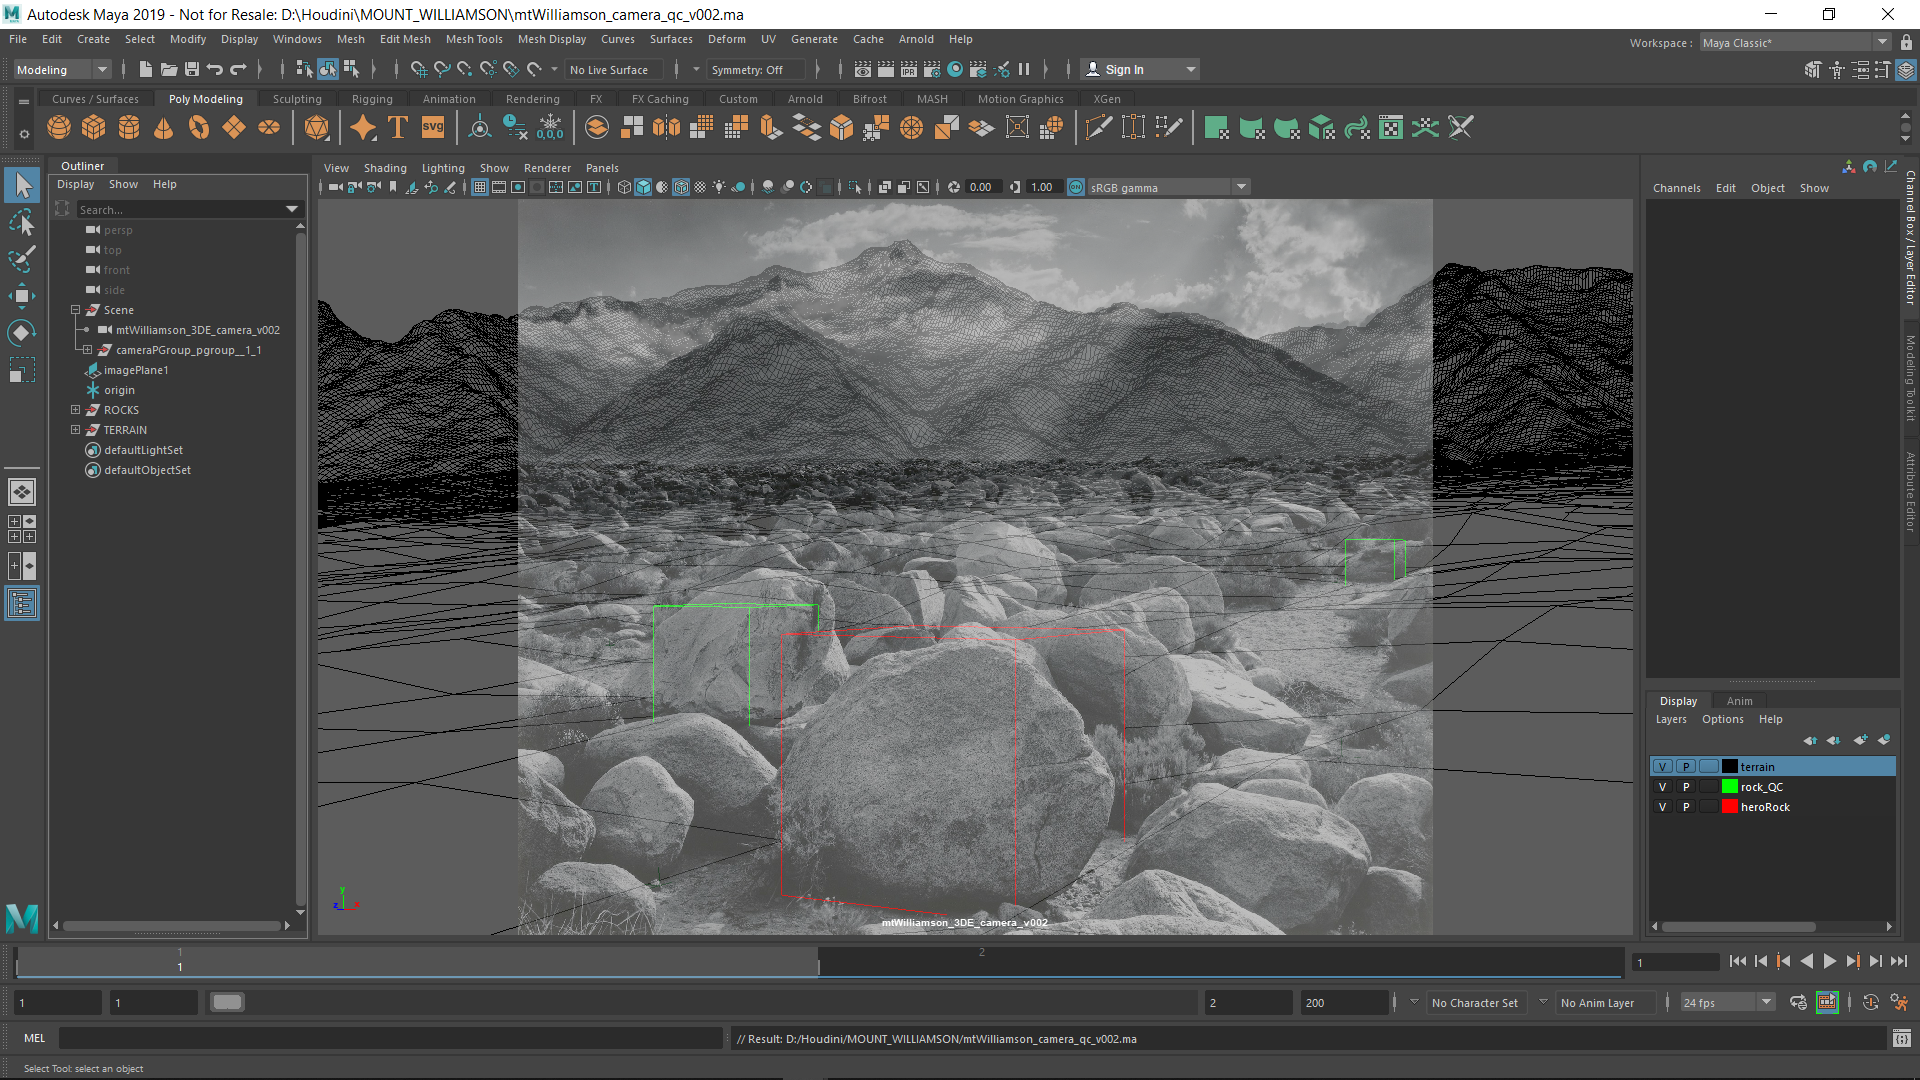 In Maya QC of ground with 1m cubes. It's looking good!